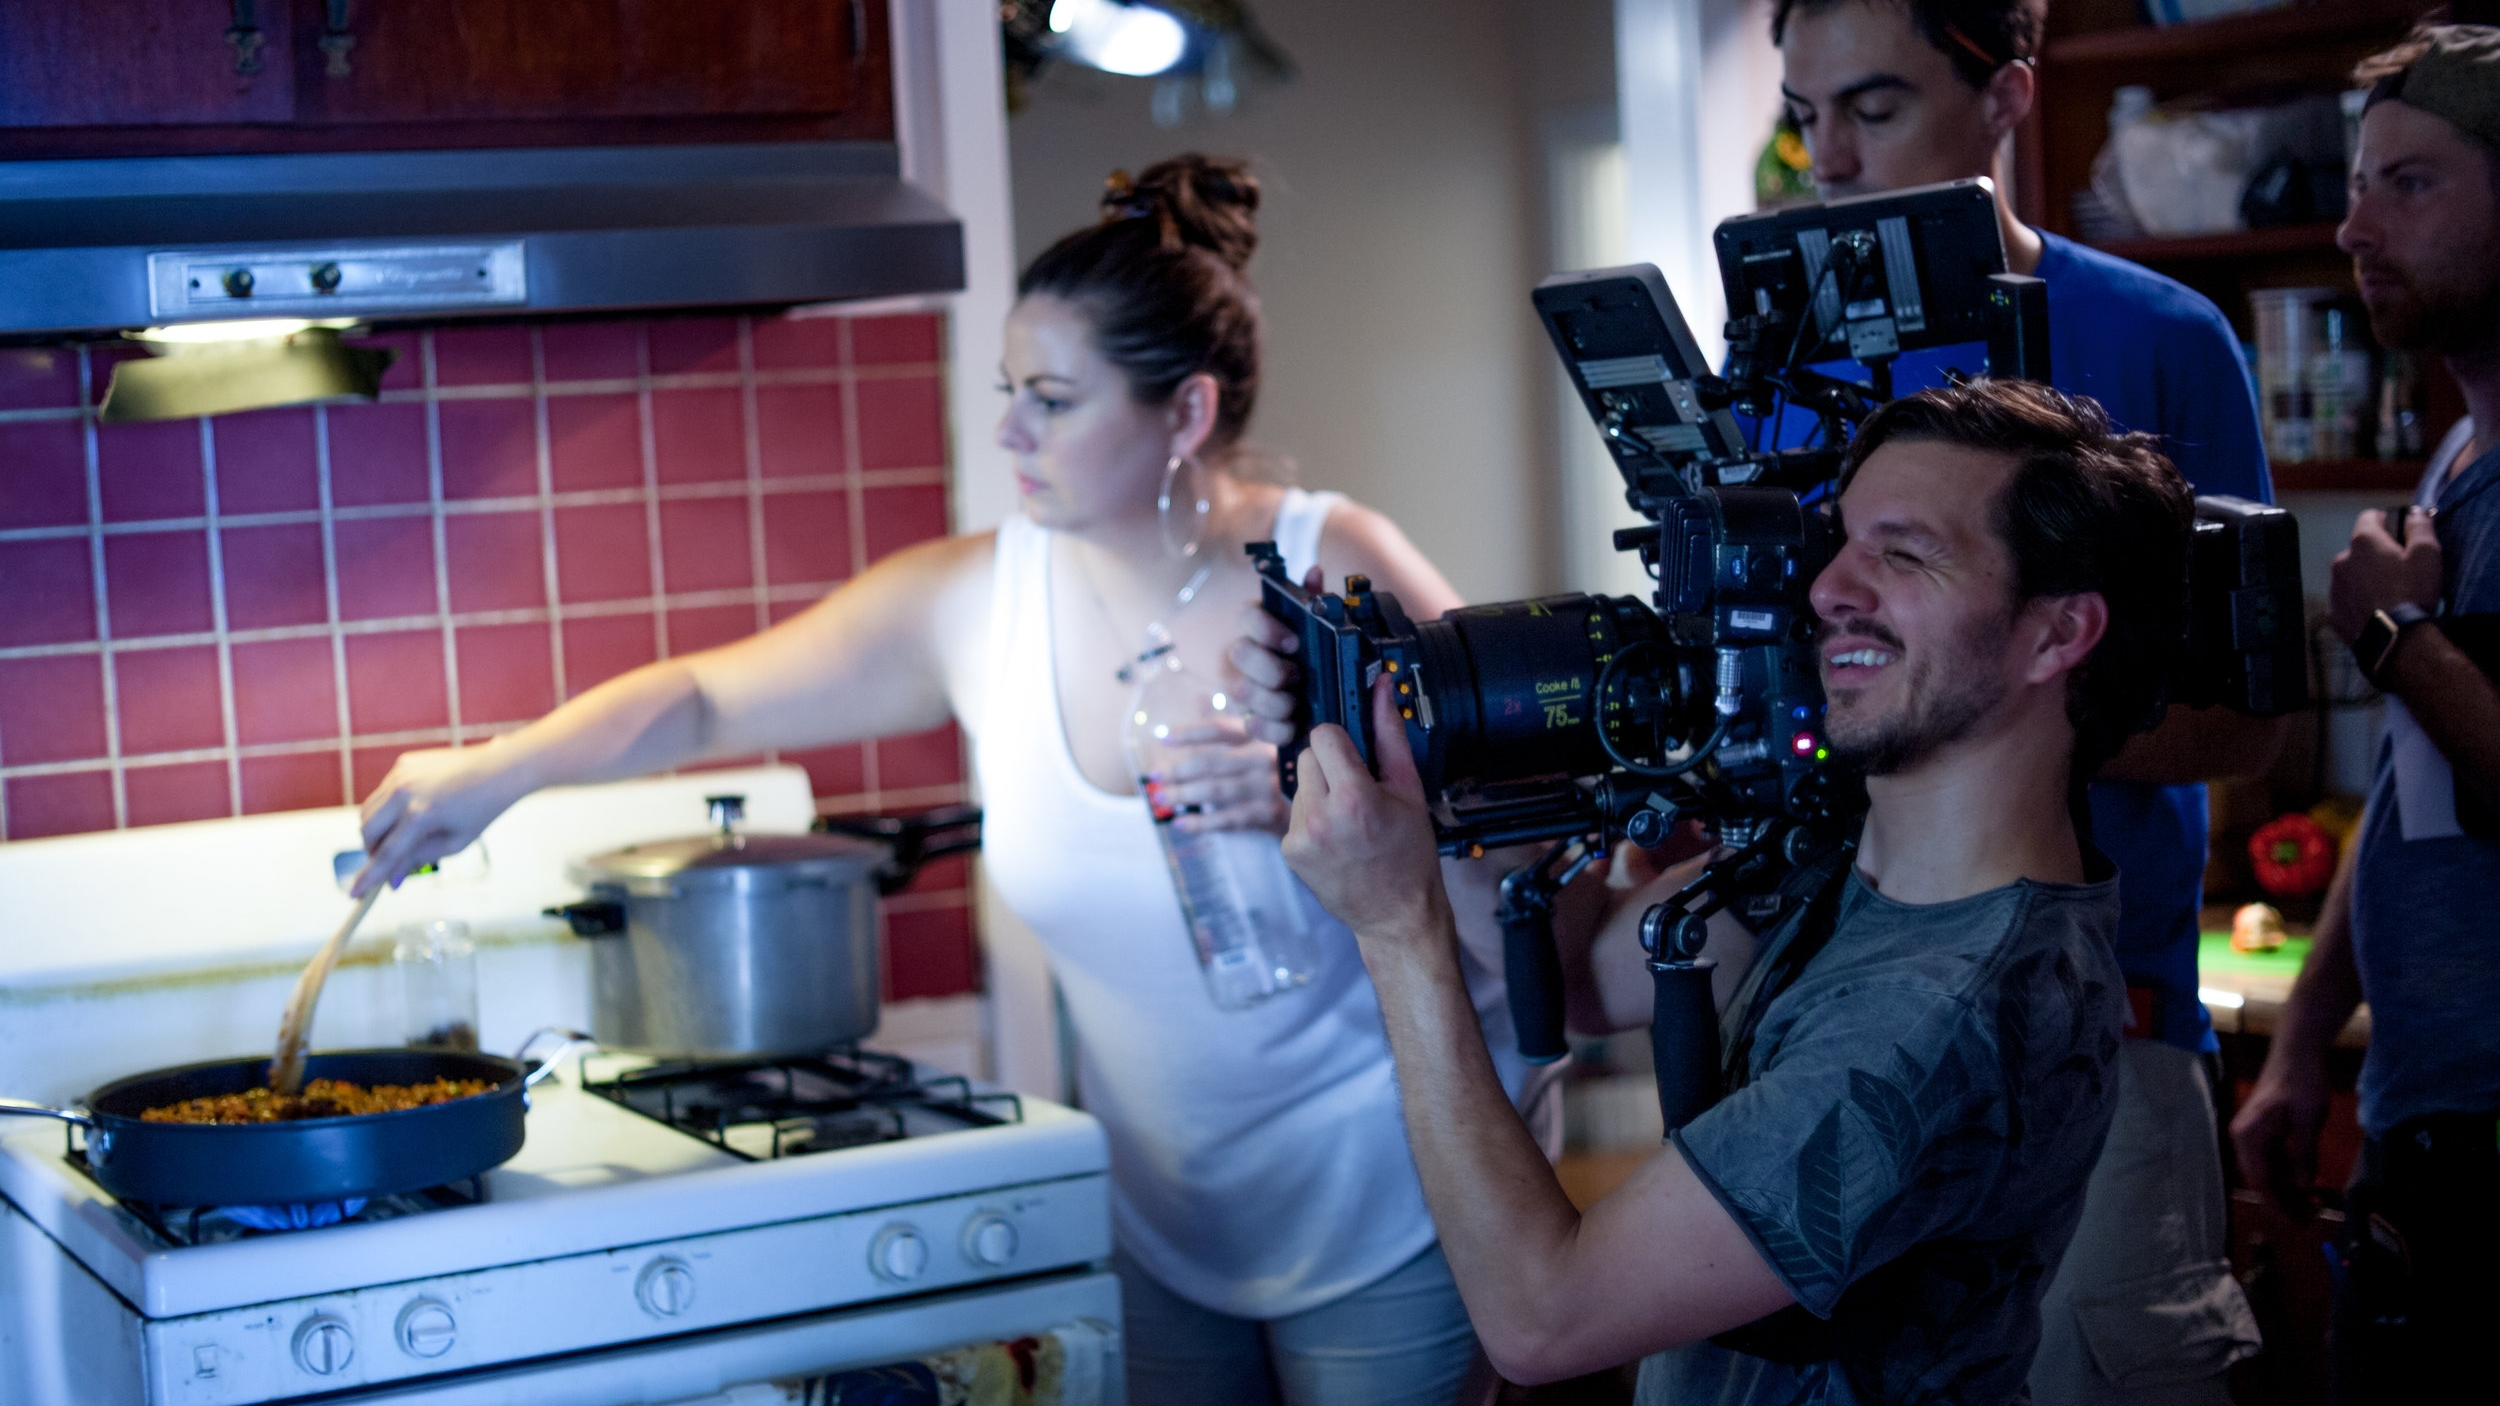 Director Claudia Murray stirs a skillet of picadillo while Director of Photography Ben Gaskell captures the scene.